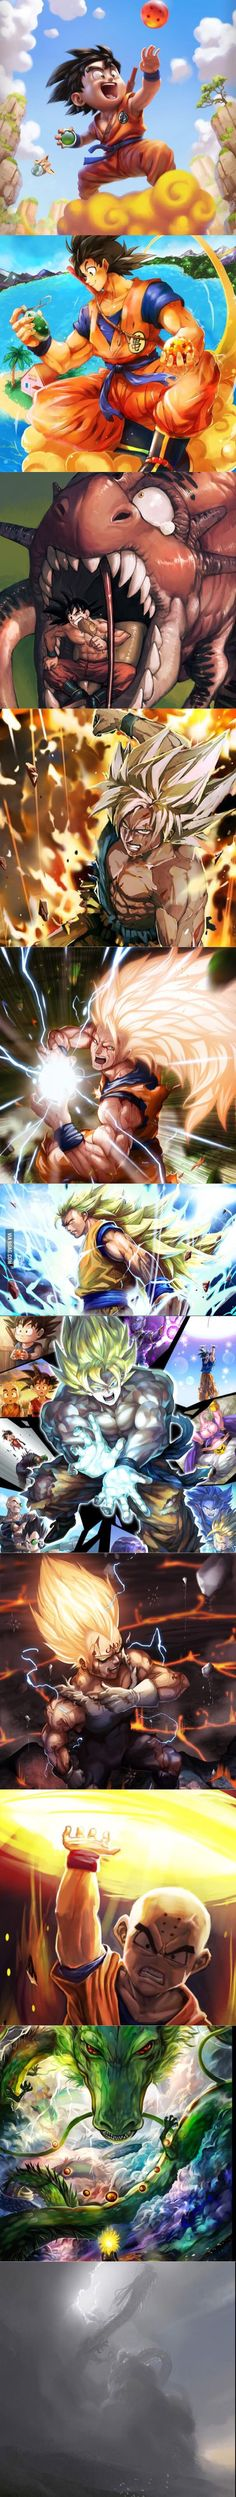 Beautiful DBZ artwork. Upvote for more!